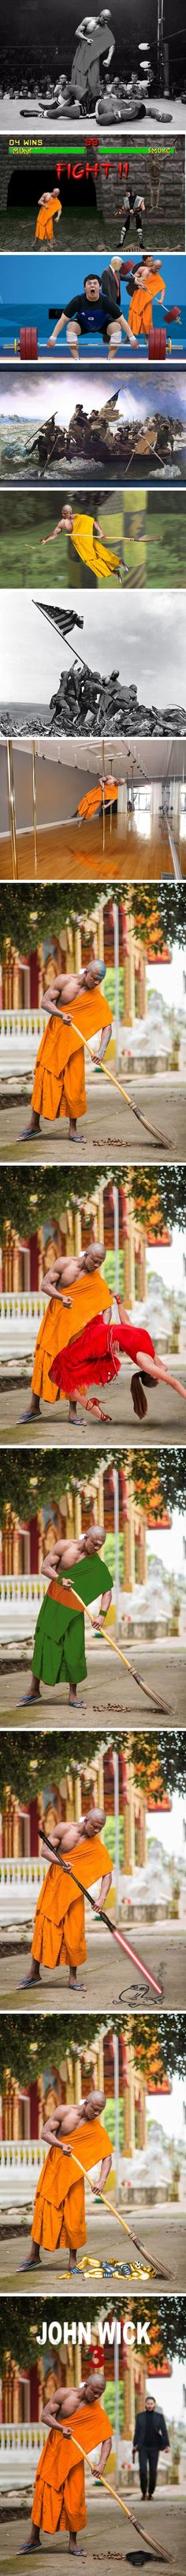 Legendary Muay Thai Fighter Becomes Buddist Monk Triggers Photoshop Battle